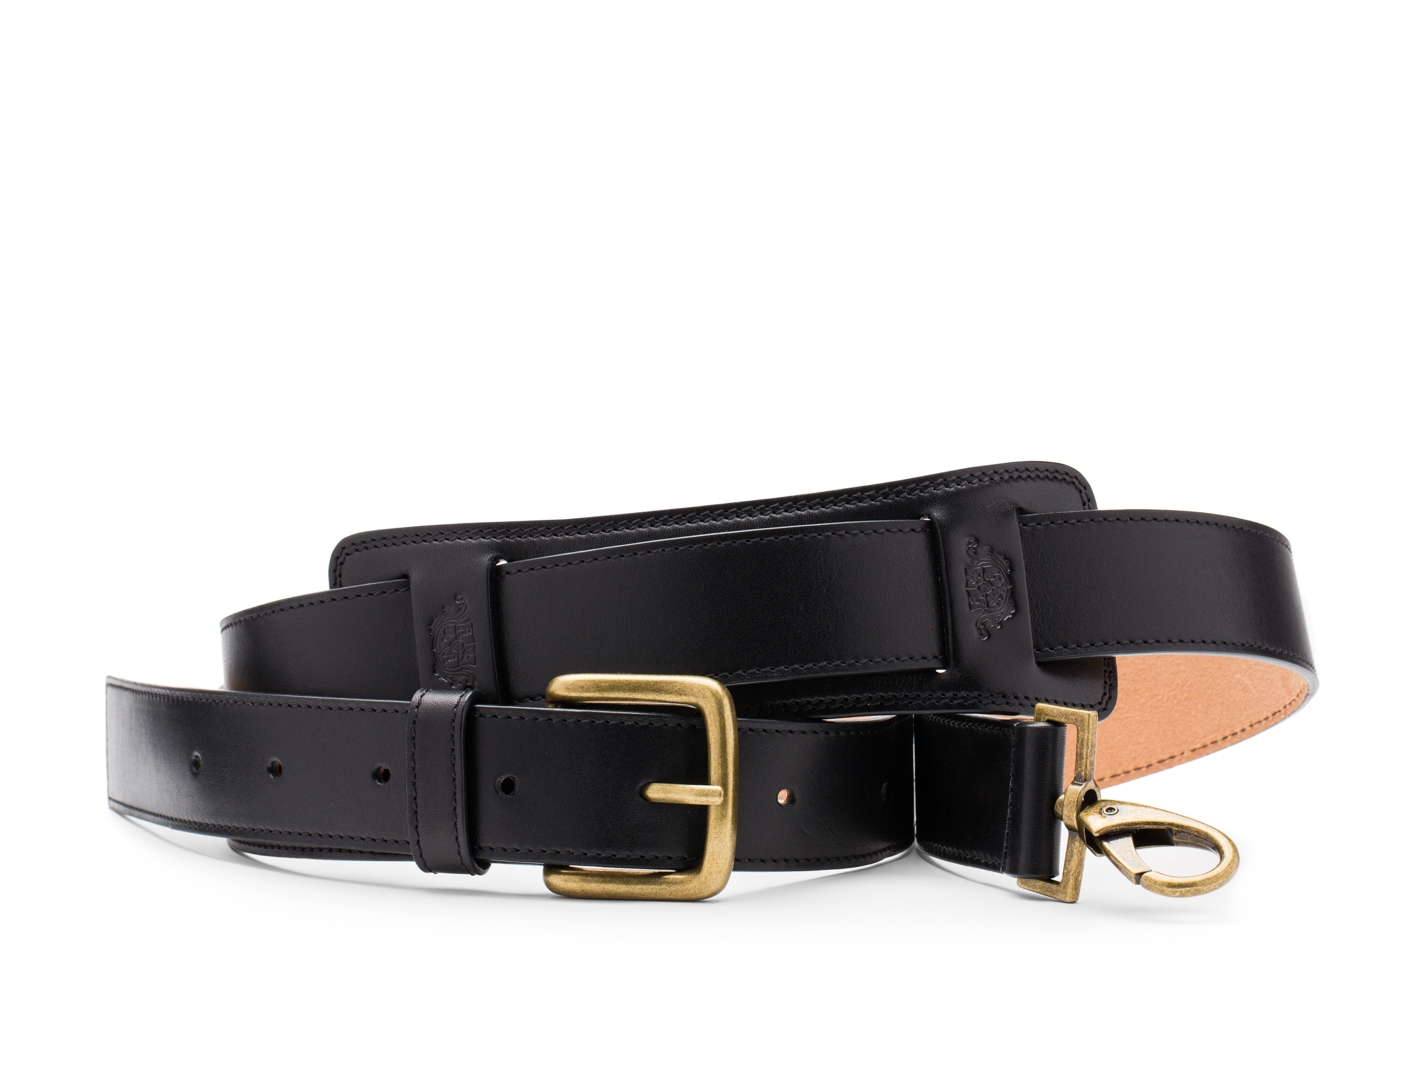 Deluxe All Leather Shoulder Strap-219 Black - 219 Black